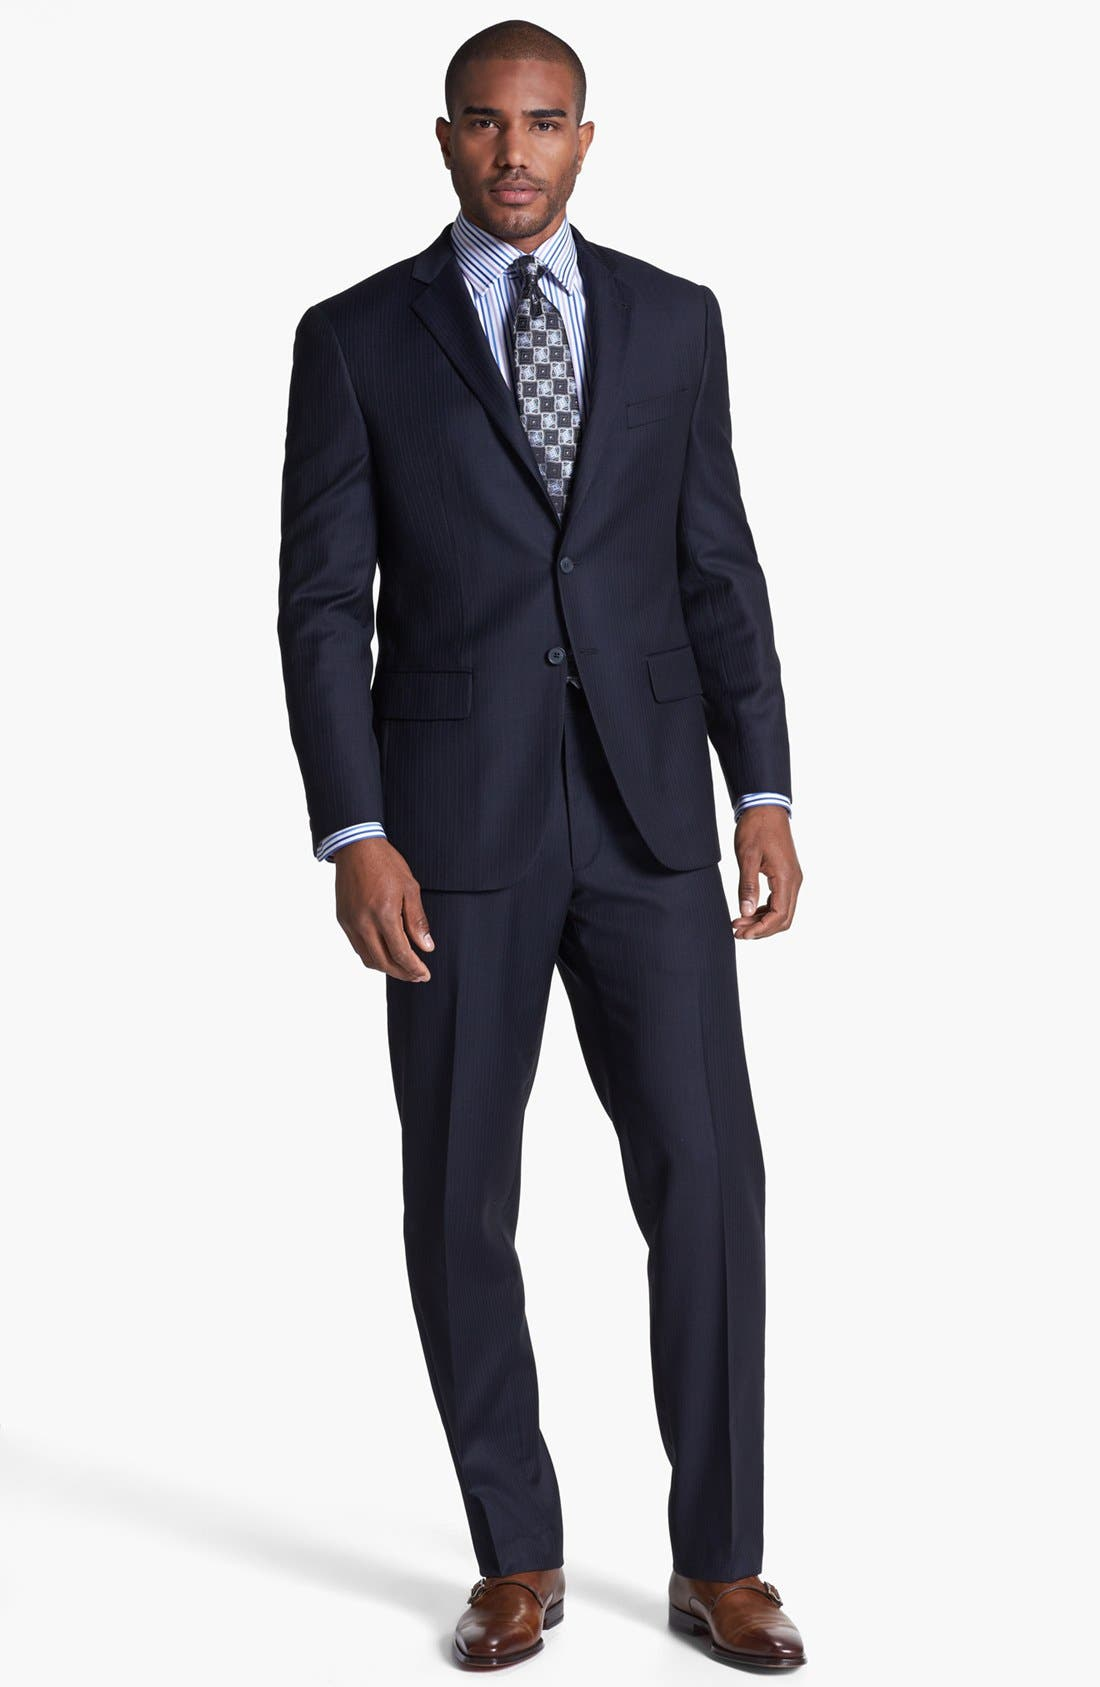 Alternate Image 1 Selected - Joseph Abboud Suit & David Donahue Dress Shirt